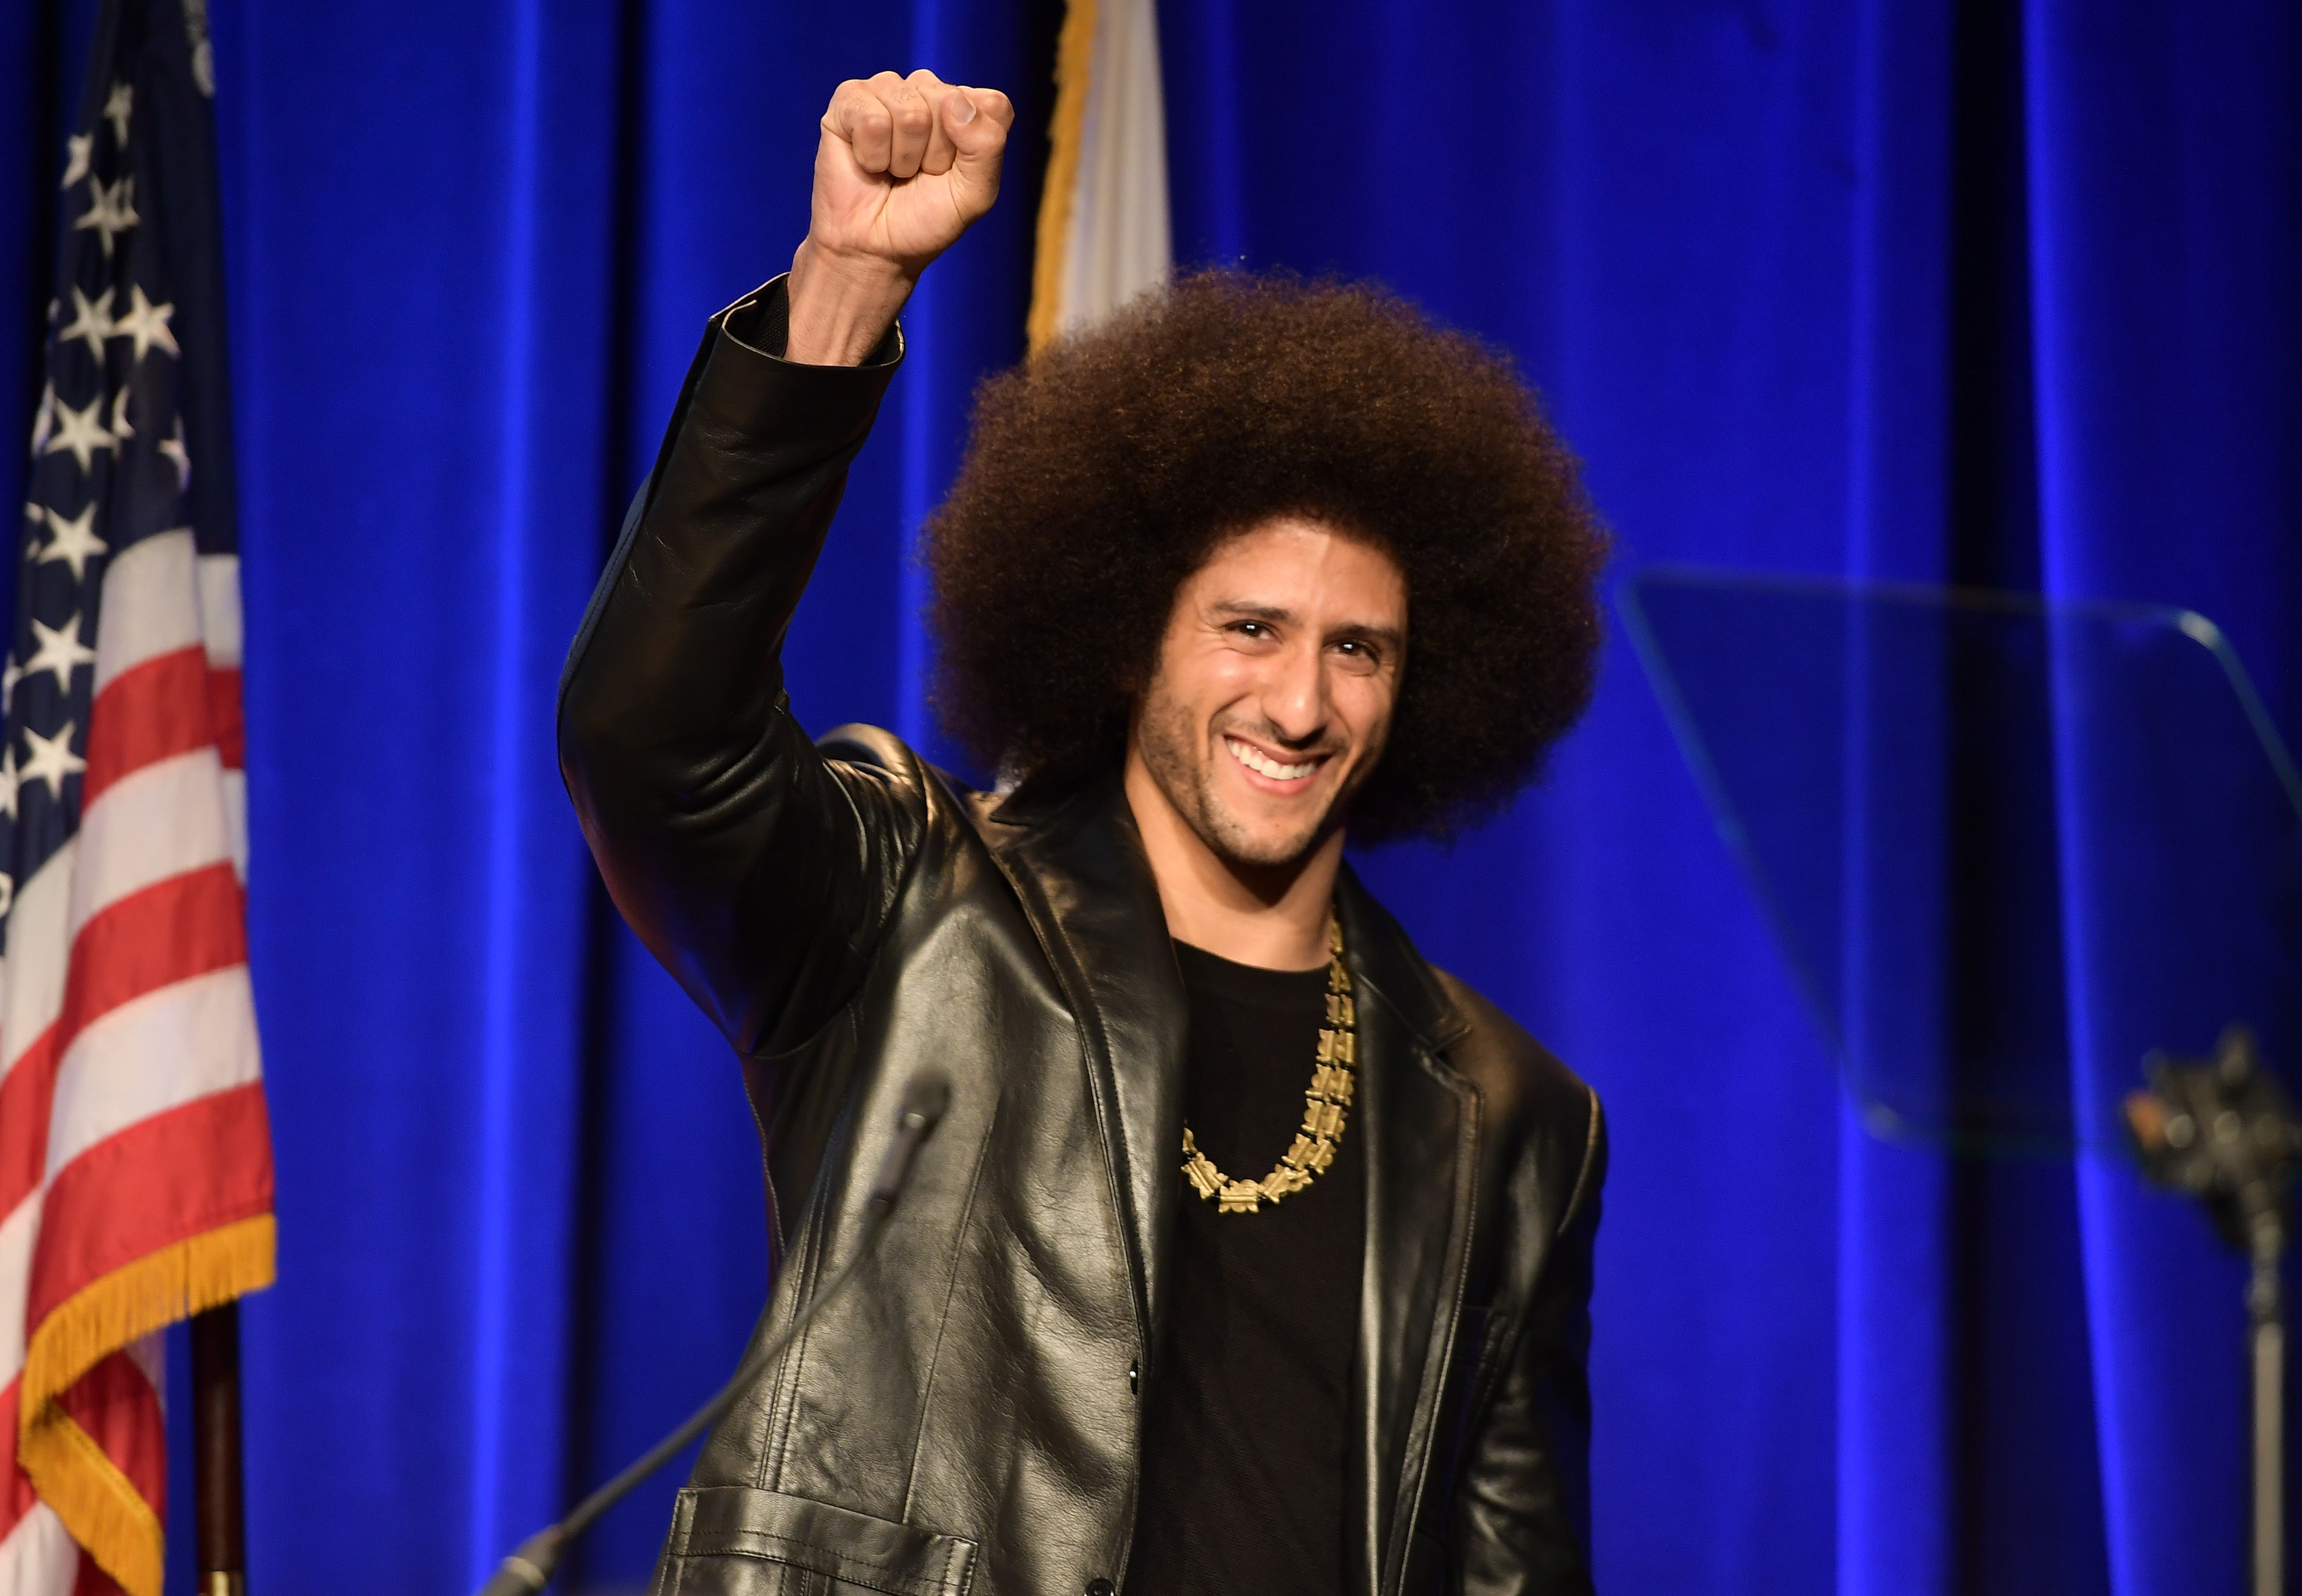 Colin Kaepernick was honored at the ACLU SoCal Hosts Annual Bill of Rights Dinner in December 2017.